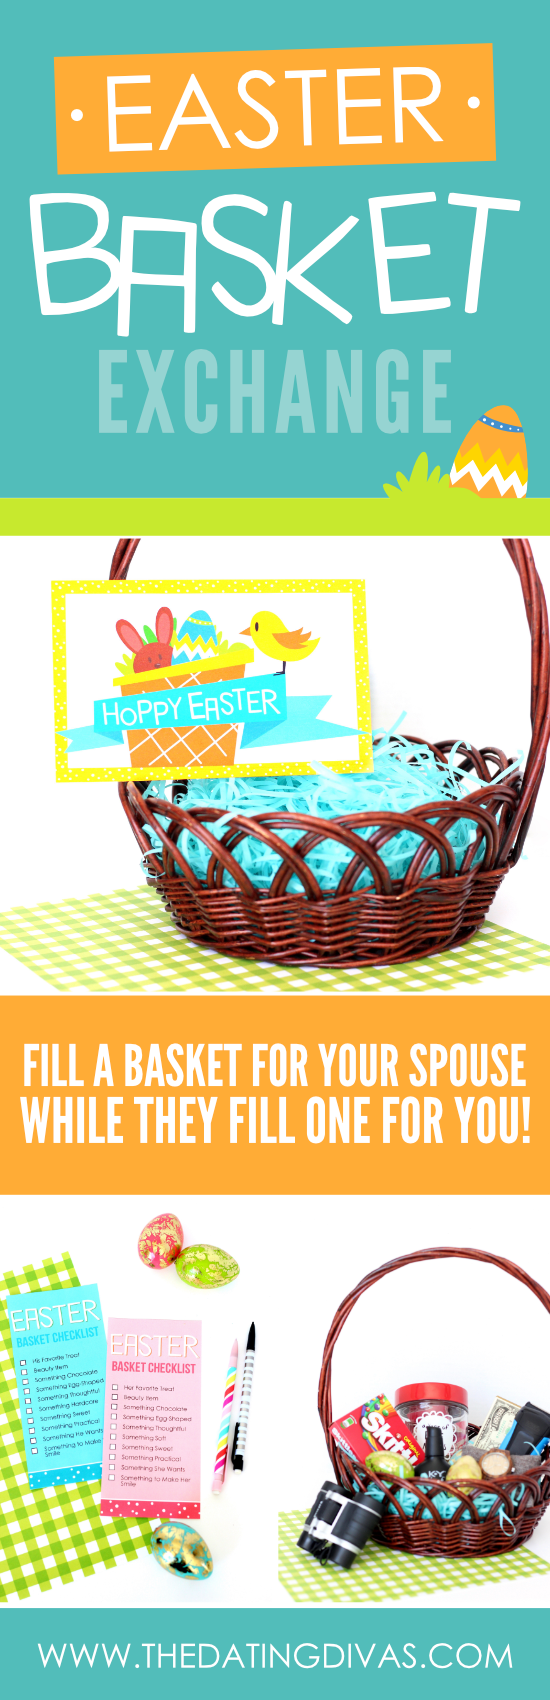 Easter basket exchange date night from the dating divas fill an easter basket for your spouse while they fill one for you negle Choice Image